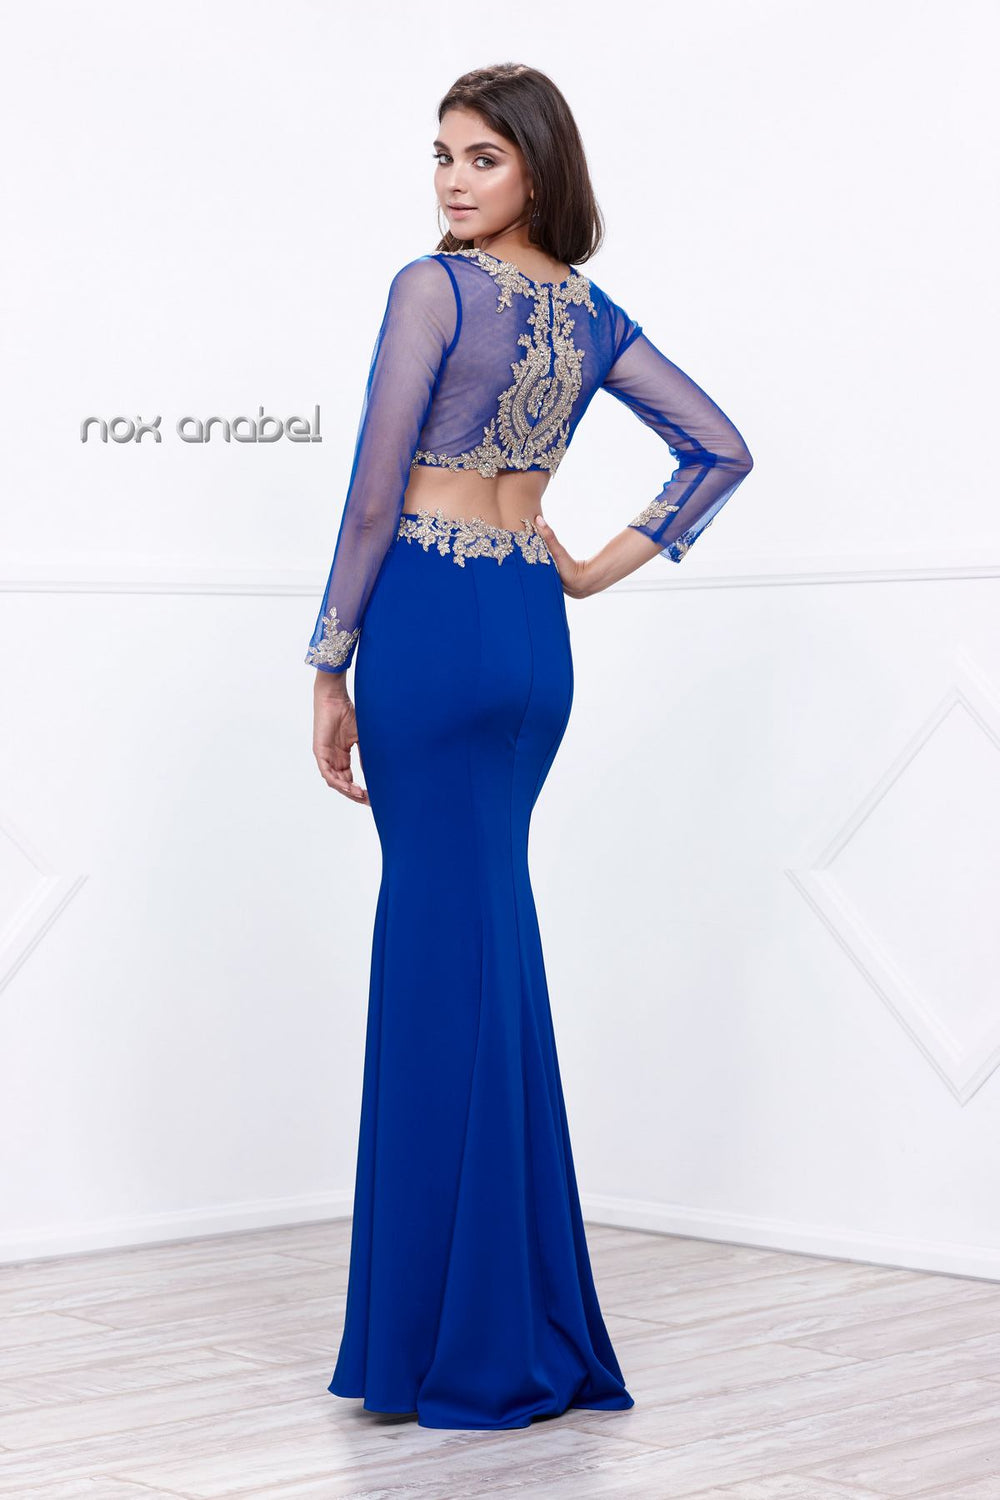 TWO PIECE LACE APPLIQUES LONG SLEEVE PROM DRESS.